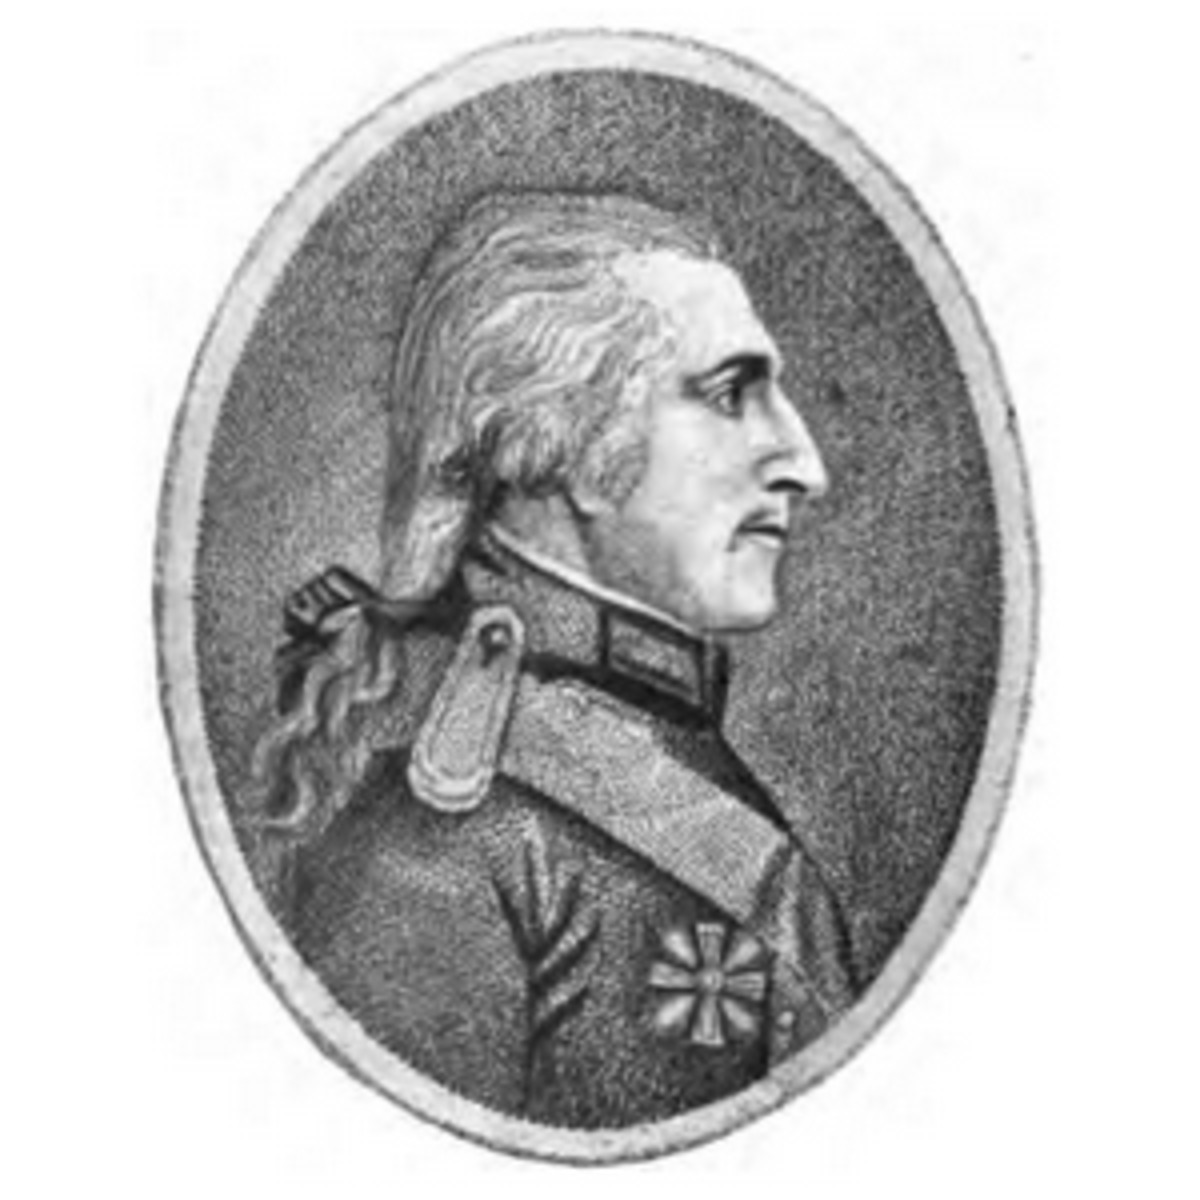 Profile of Count Rumford in uniform.